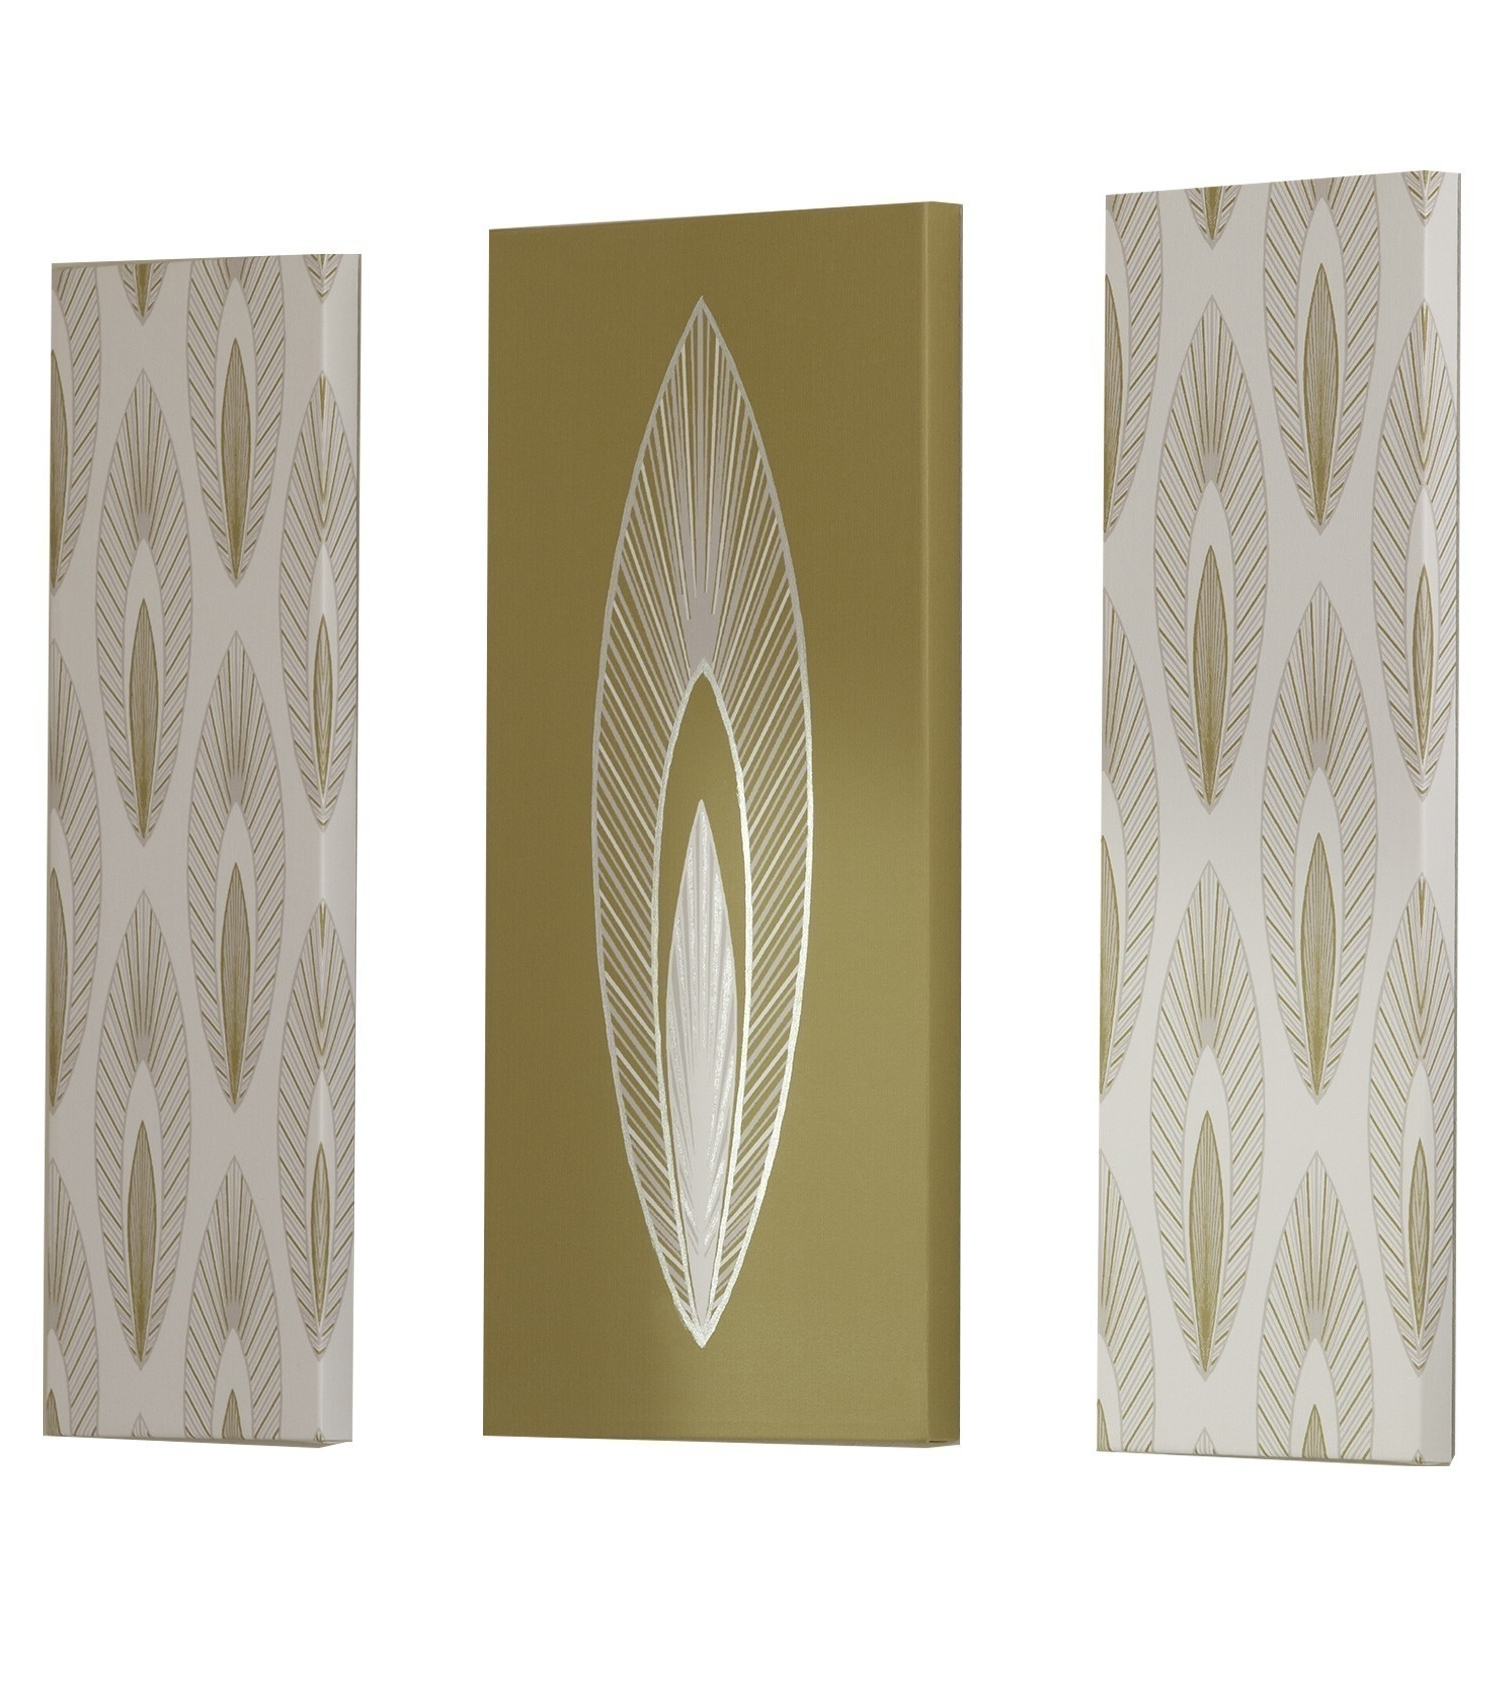 Best And Newest Arrow Leaf Wall Art Set Chartreuse 70x60cmiliv Intended For Elements Wall Art (View 2 of 15)